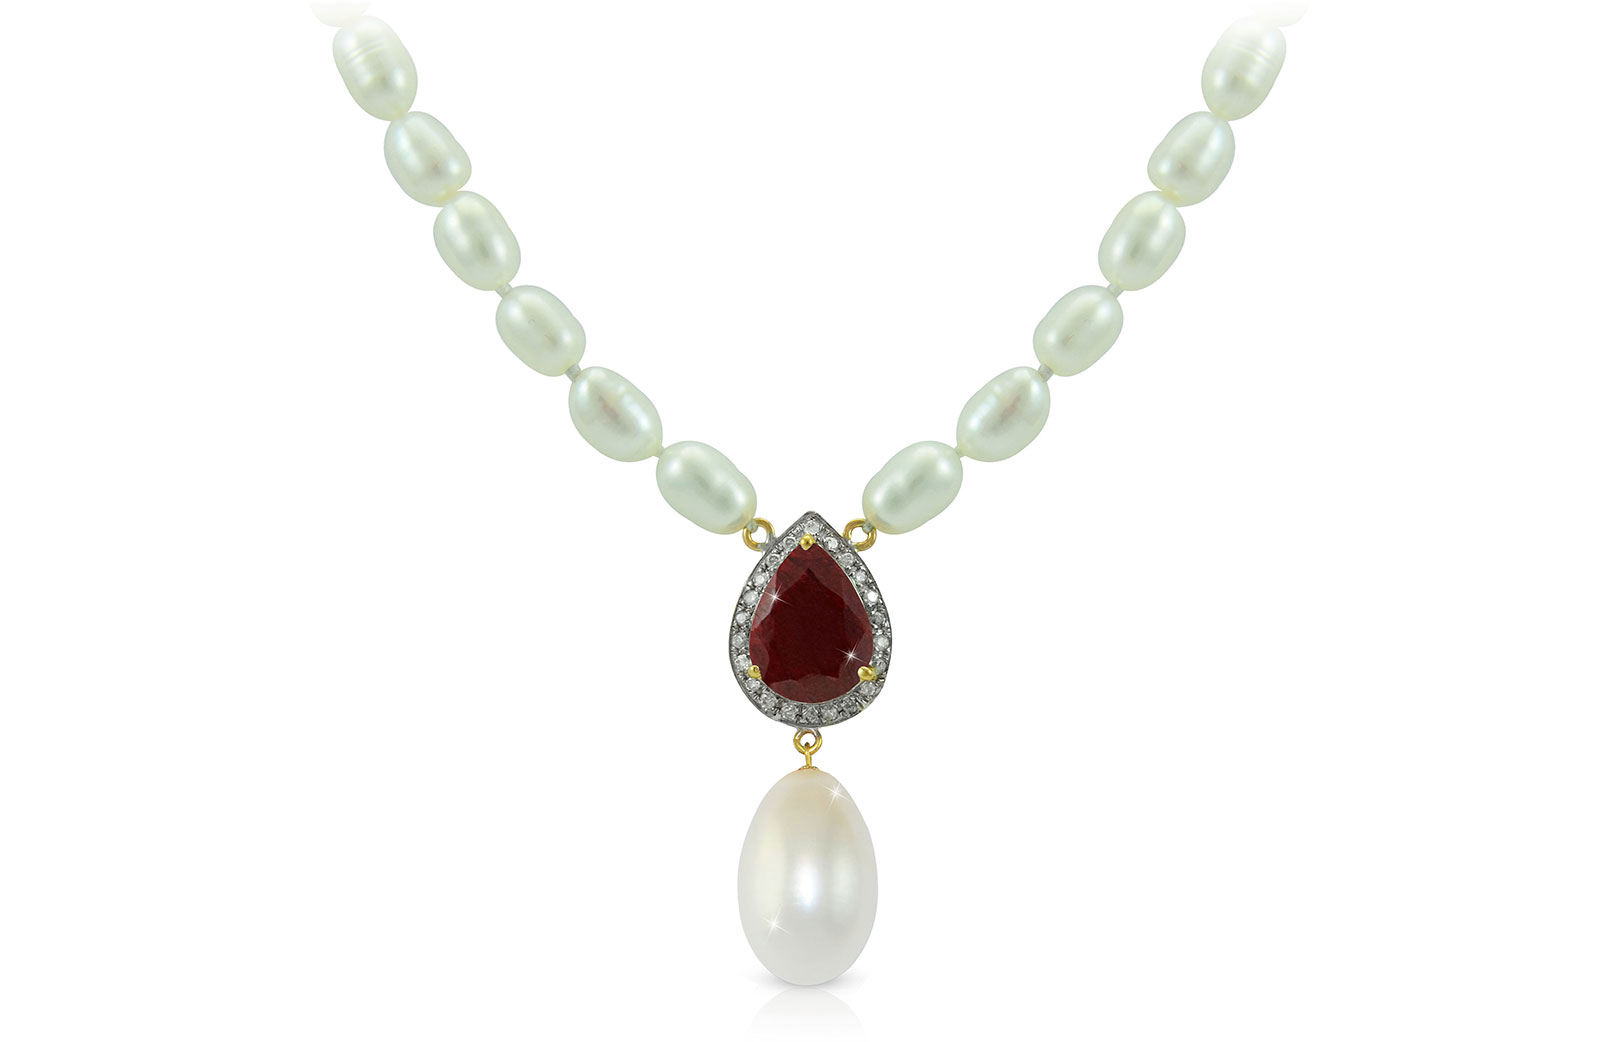 Vera Perla 18K Gold 0.12ct Diamonds, Royal Indian Ruby and 13mm Pearl Necklace